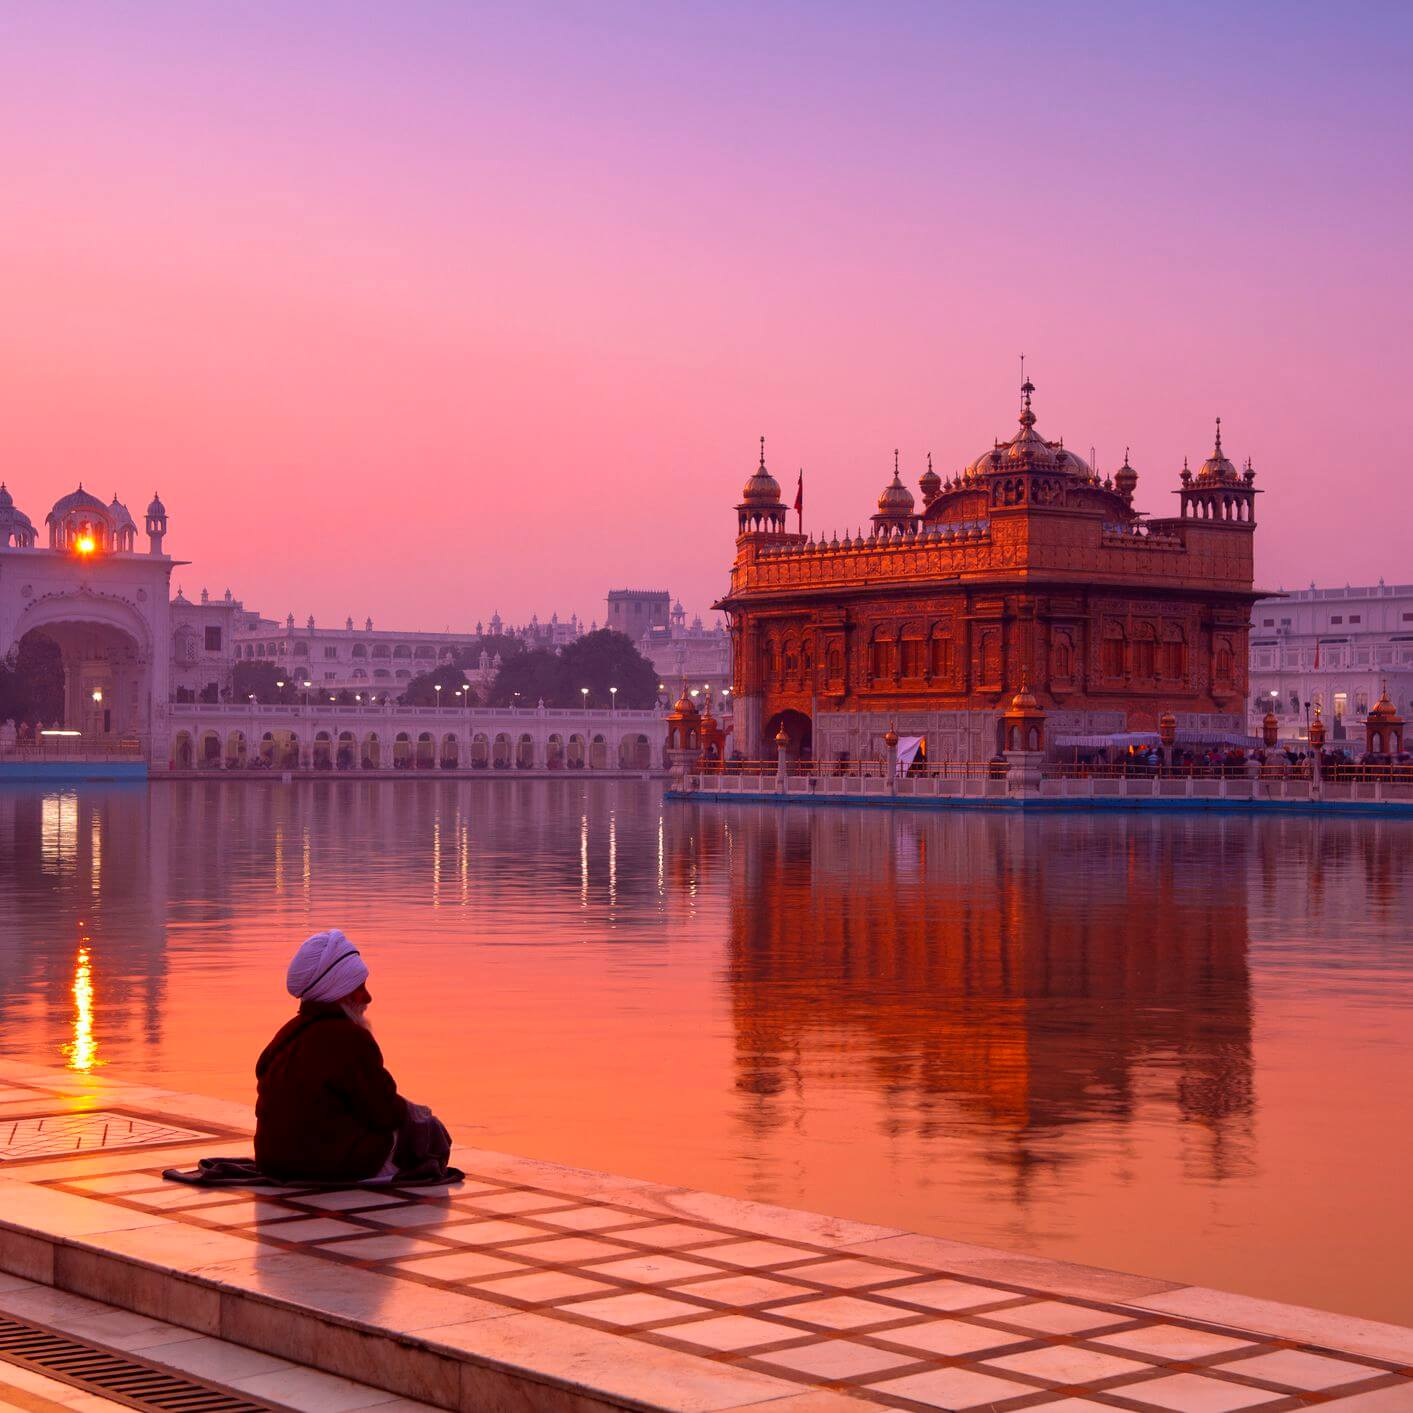 latest wallpaper images of golden temple images for download